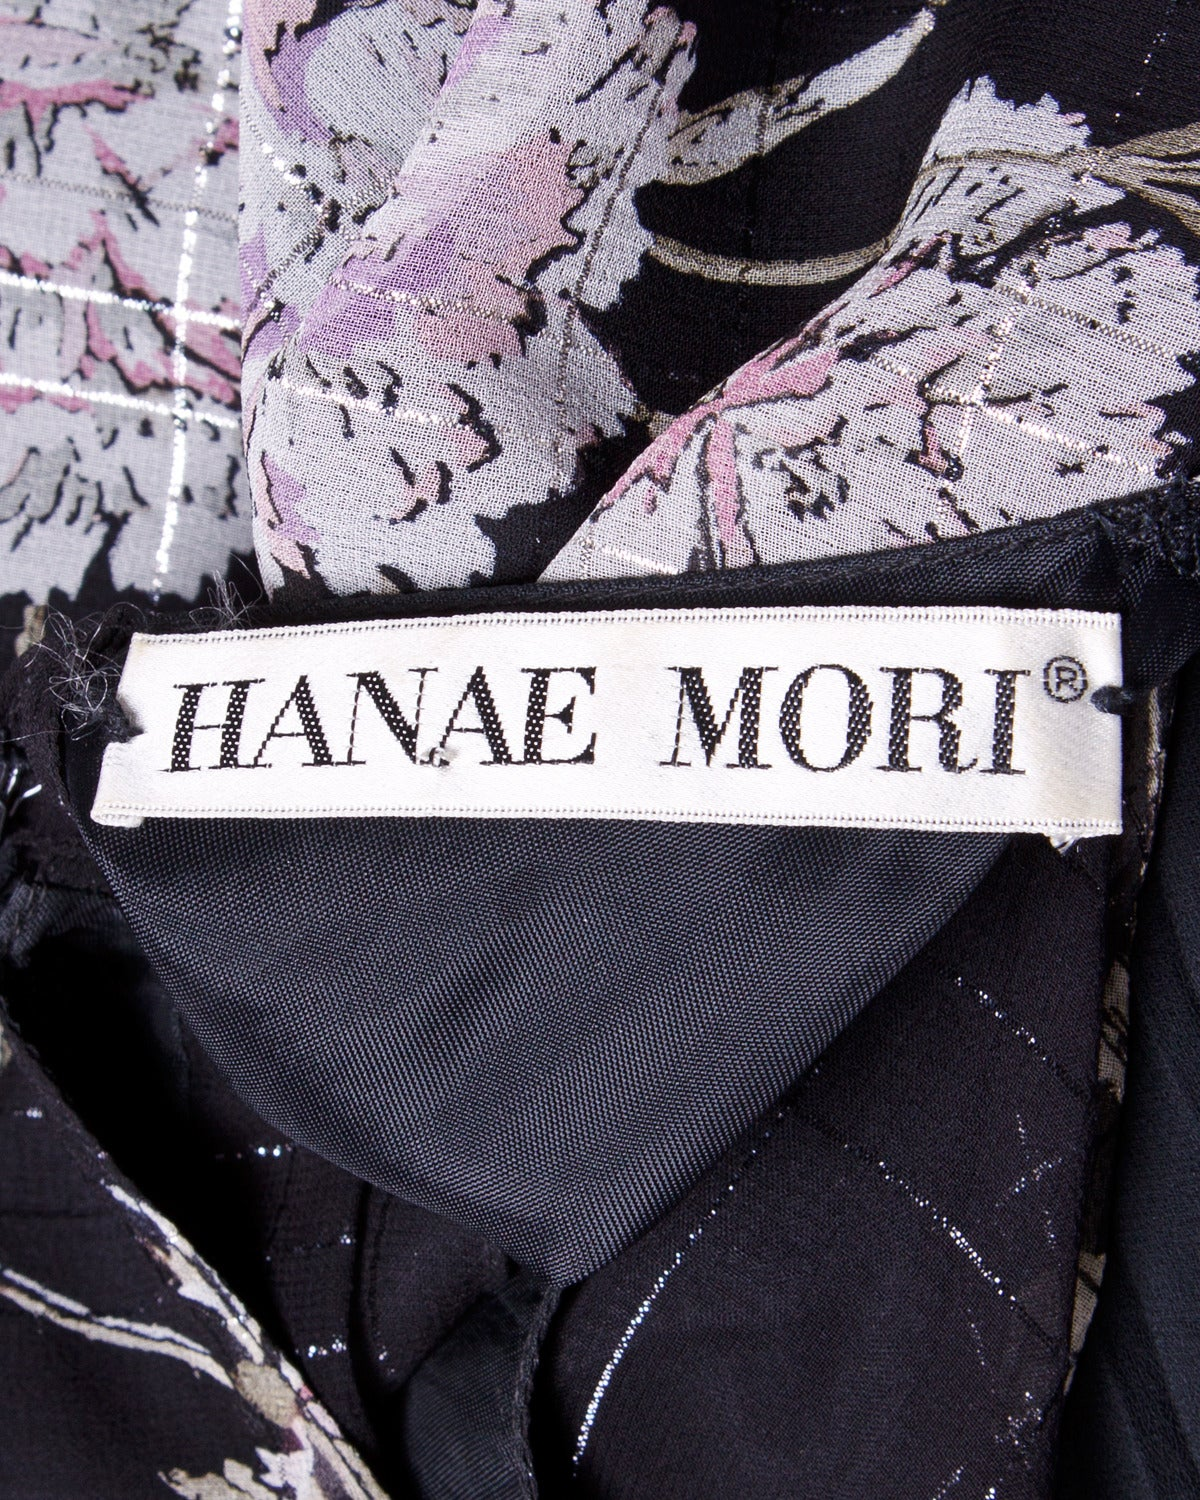 Hanae Mori Vintage 1970s 70s Sheer Floral Print Metallic Dress For Sale 2